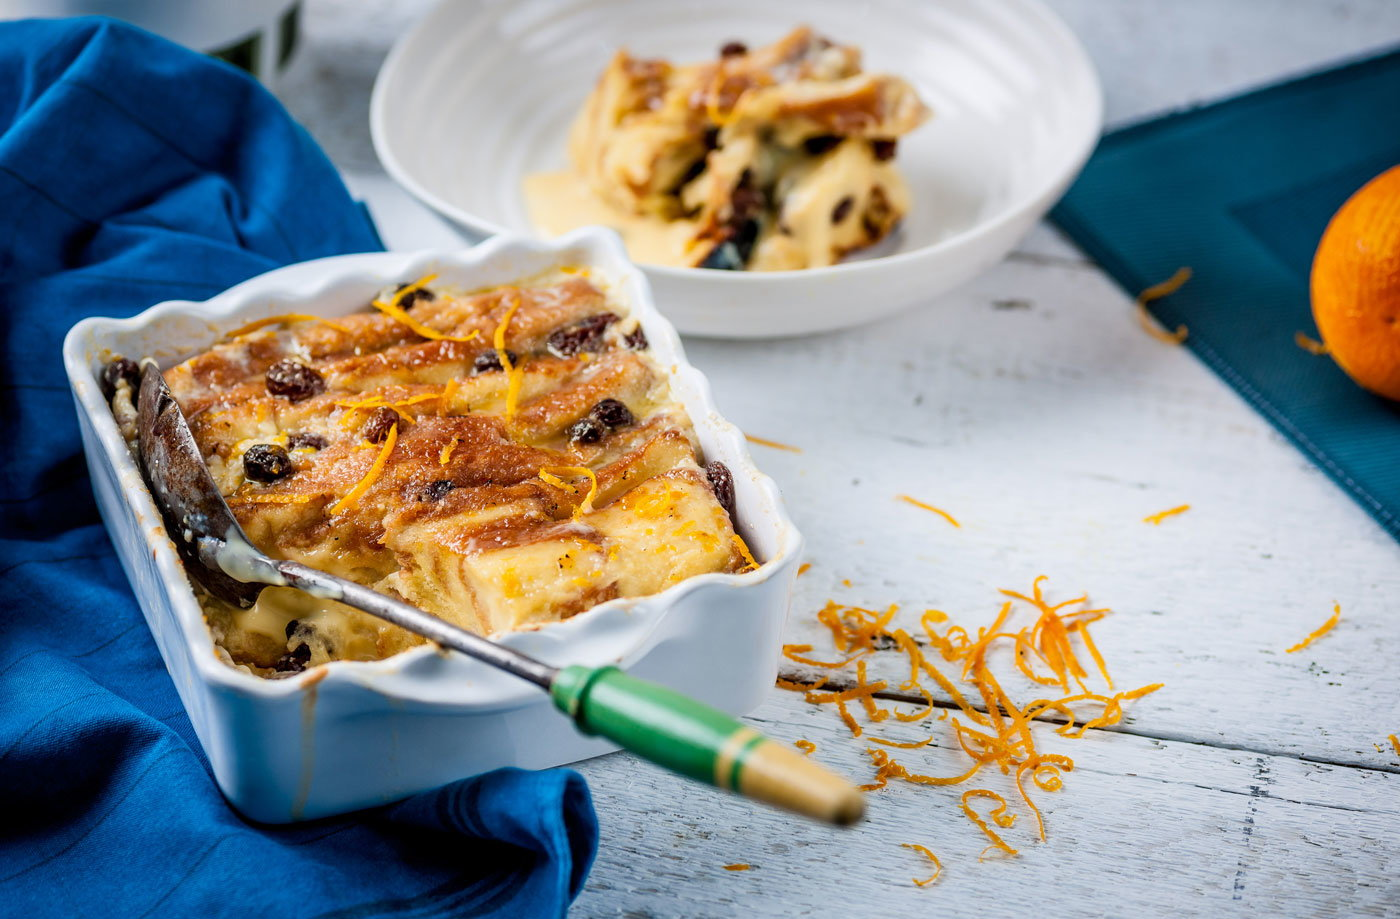 Geoffrey Smeddle's brioche and butter pudding recipe